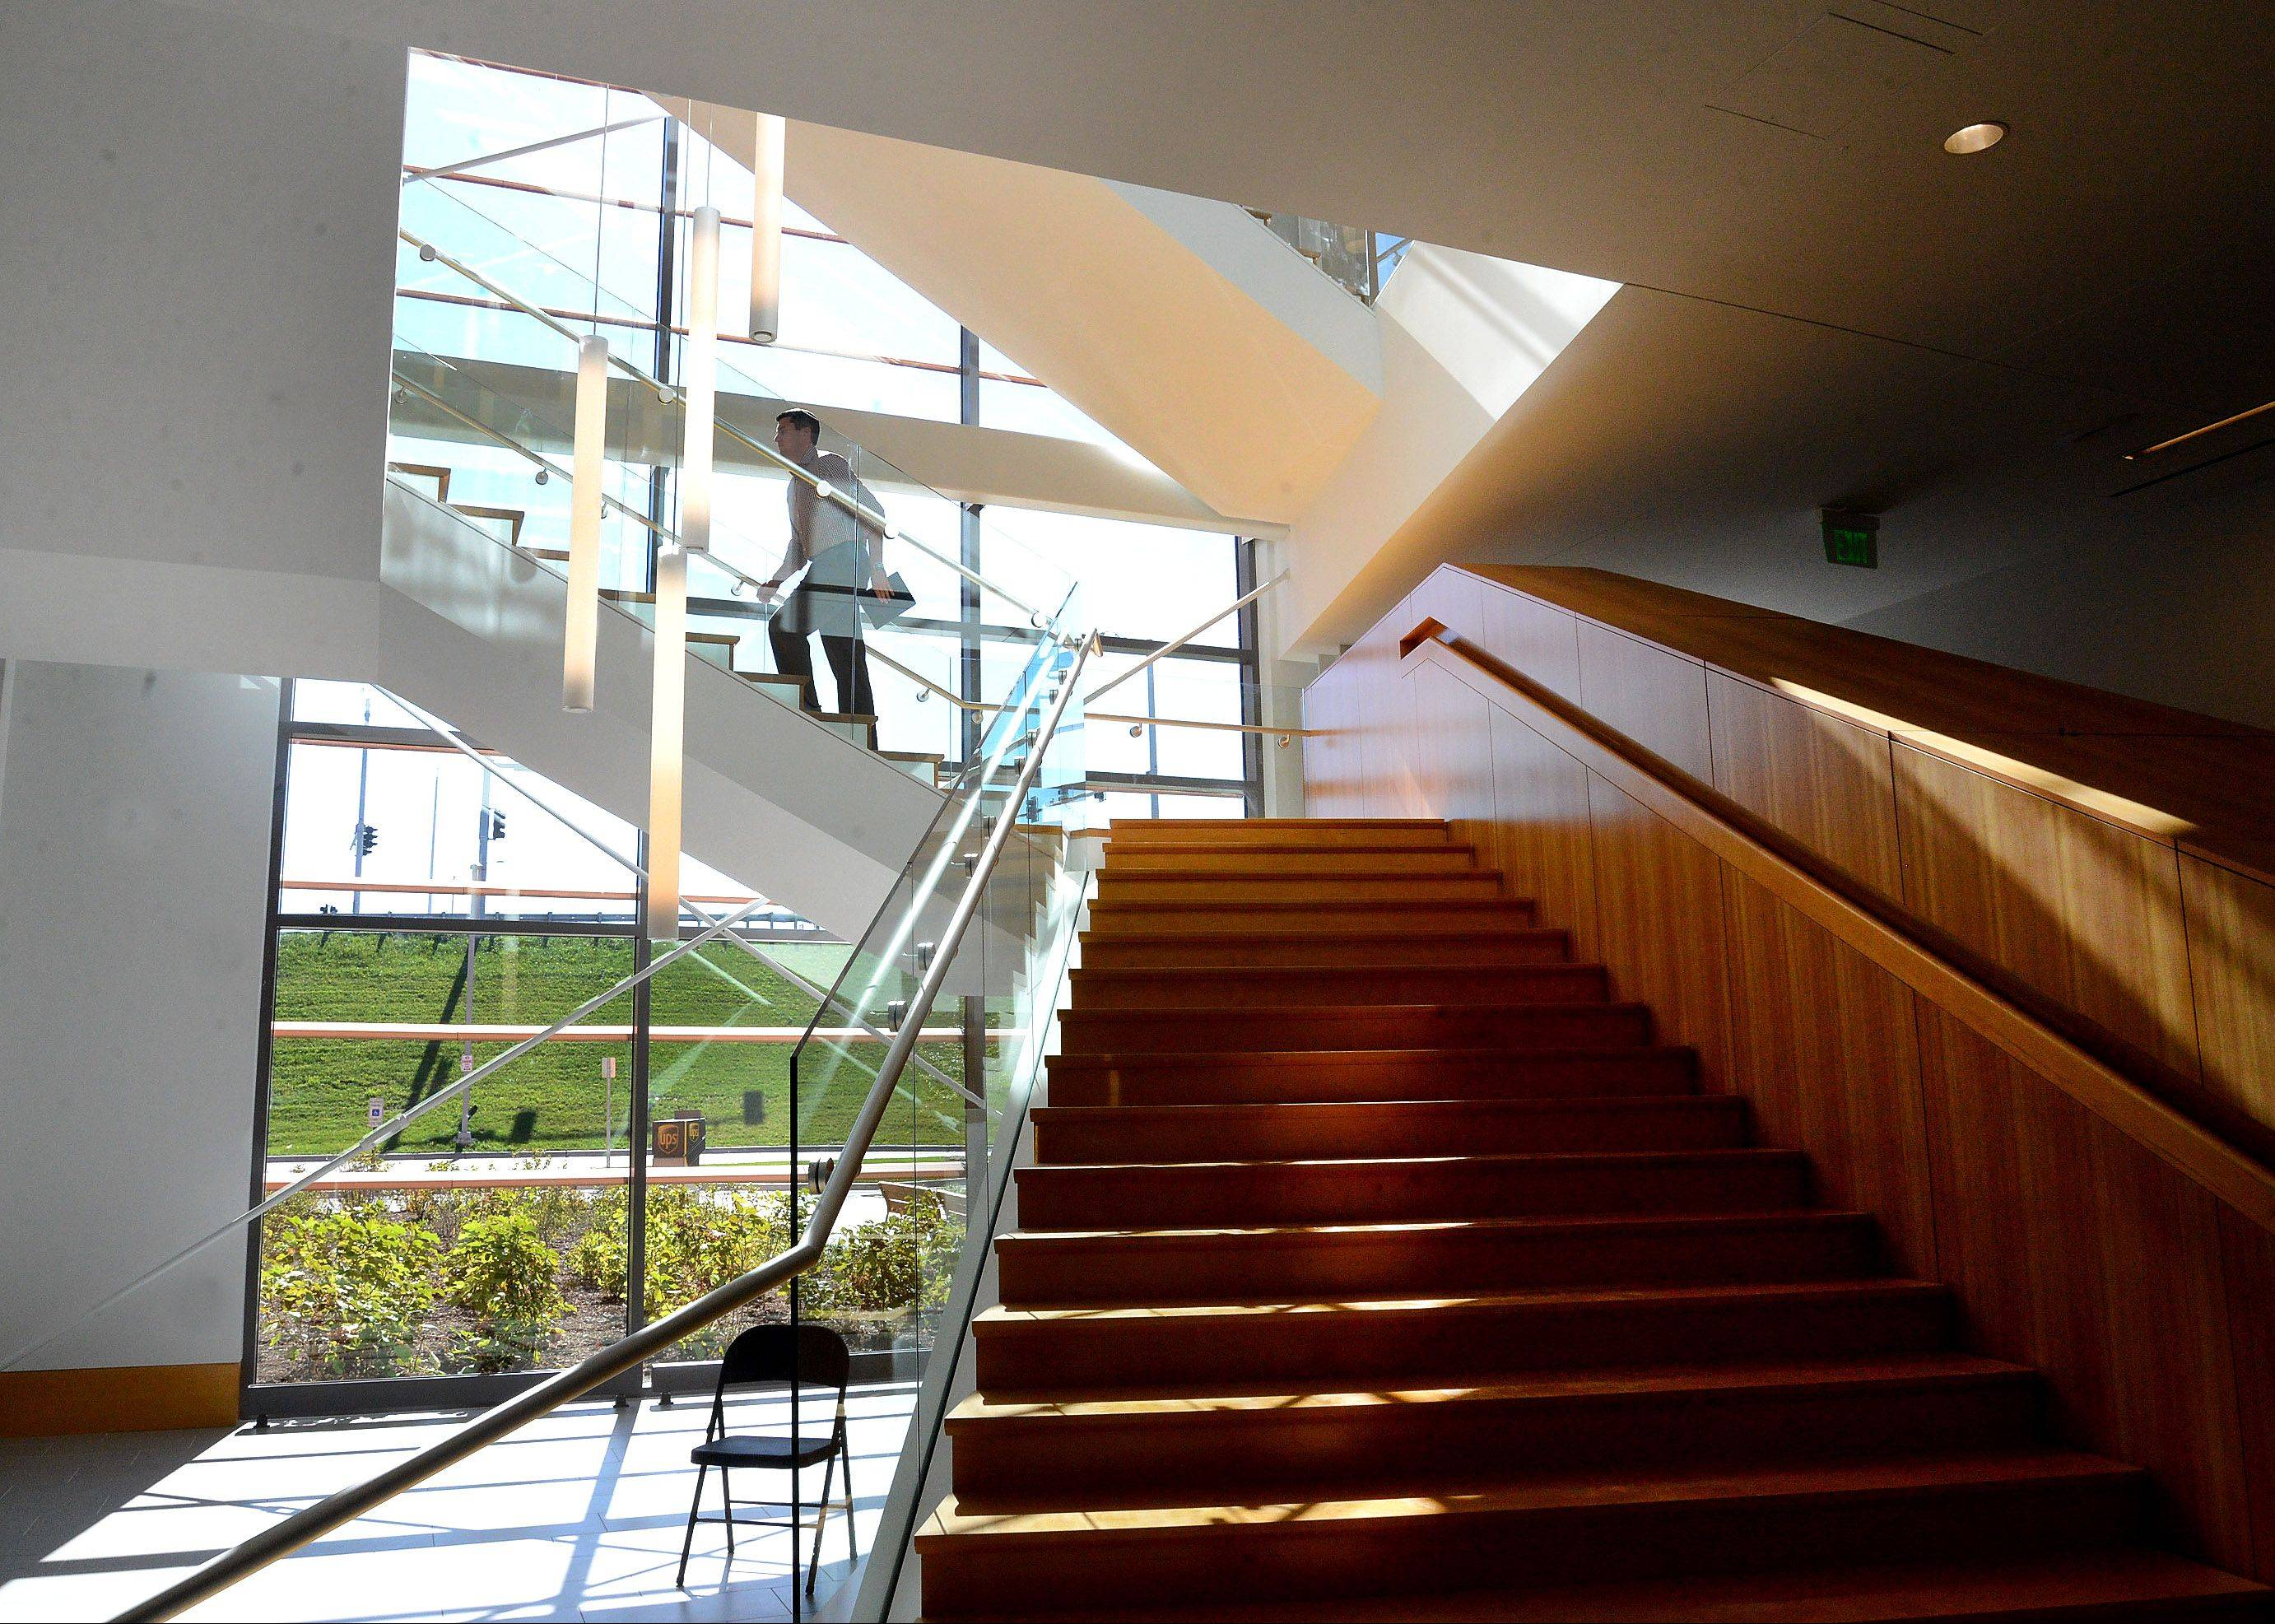 A staircase leads to the second floor of the Big Ten Conference's new headquarters in Rosemont. The building includes meeting space for conference officials, offices and a video room.